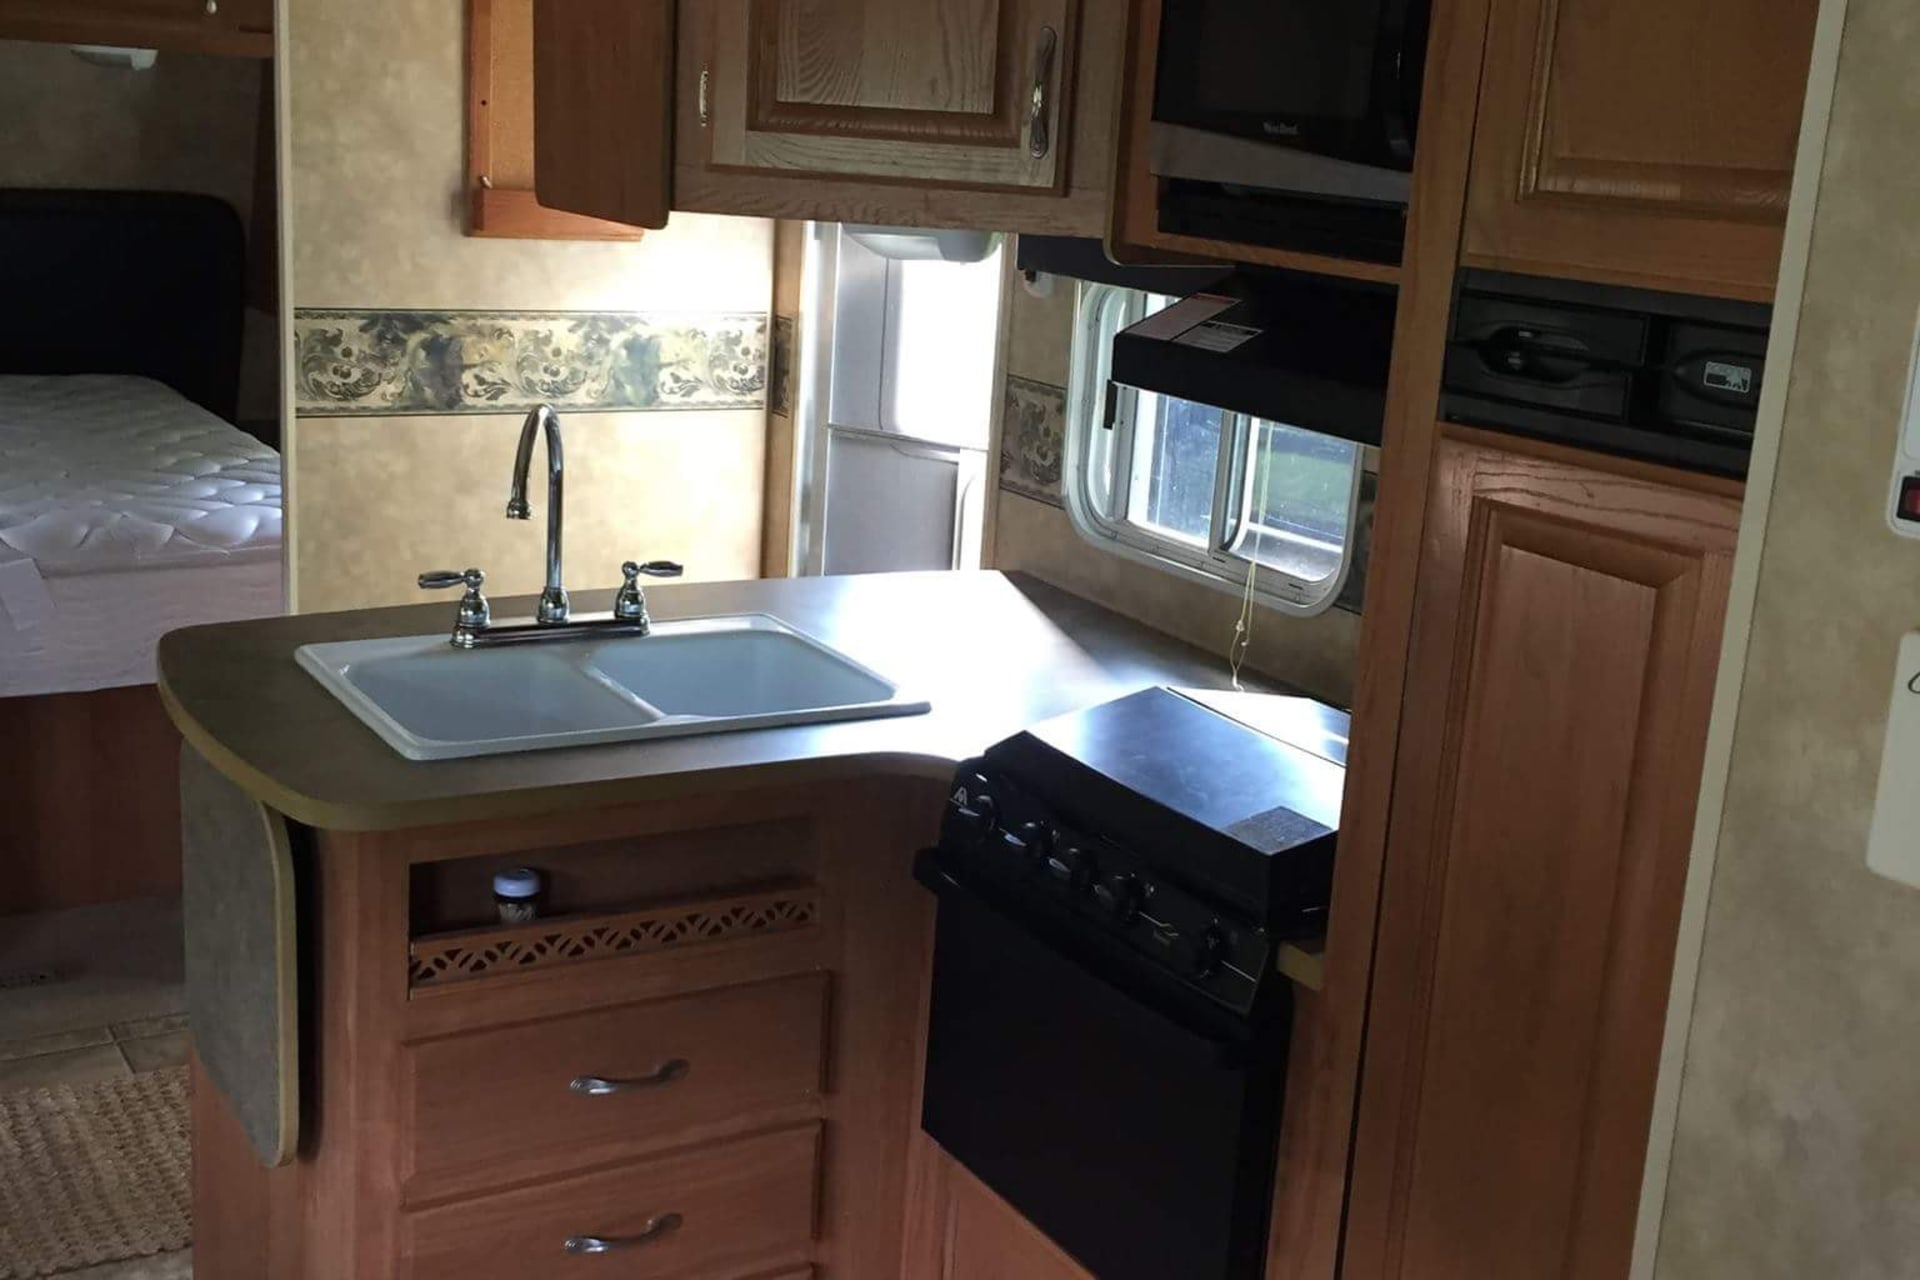 2007 Jayco Jay Flight 31bhs Travel Trailer Rv For Rent 1924 Agreatertown